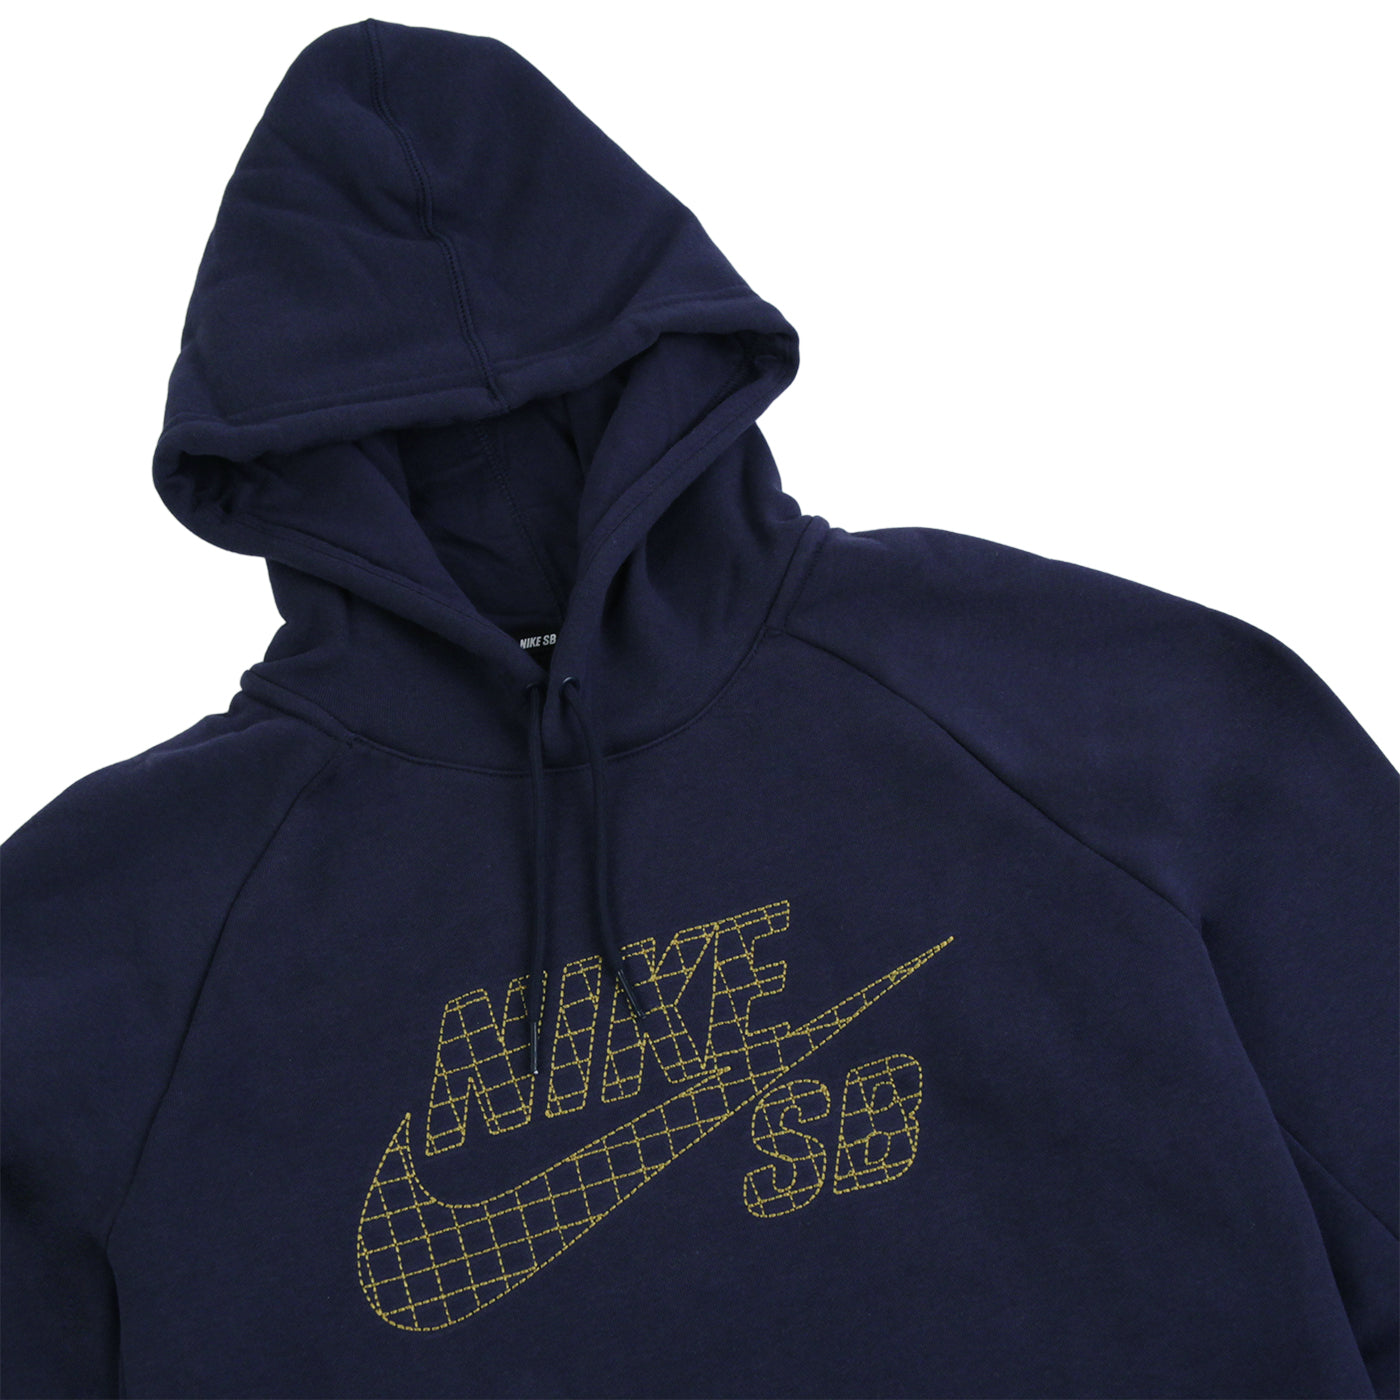 e085a4f6c195 Nike SB SB Icon Grid Fill Pullover Hoodie - Navy   Metallic Gold. Size  Charts